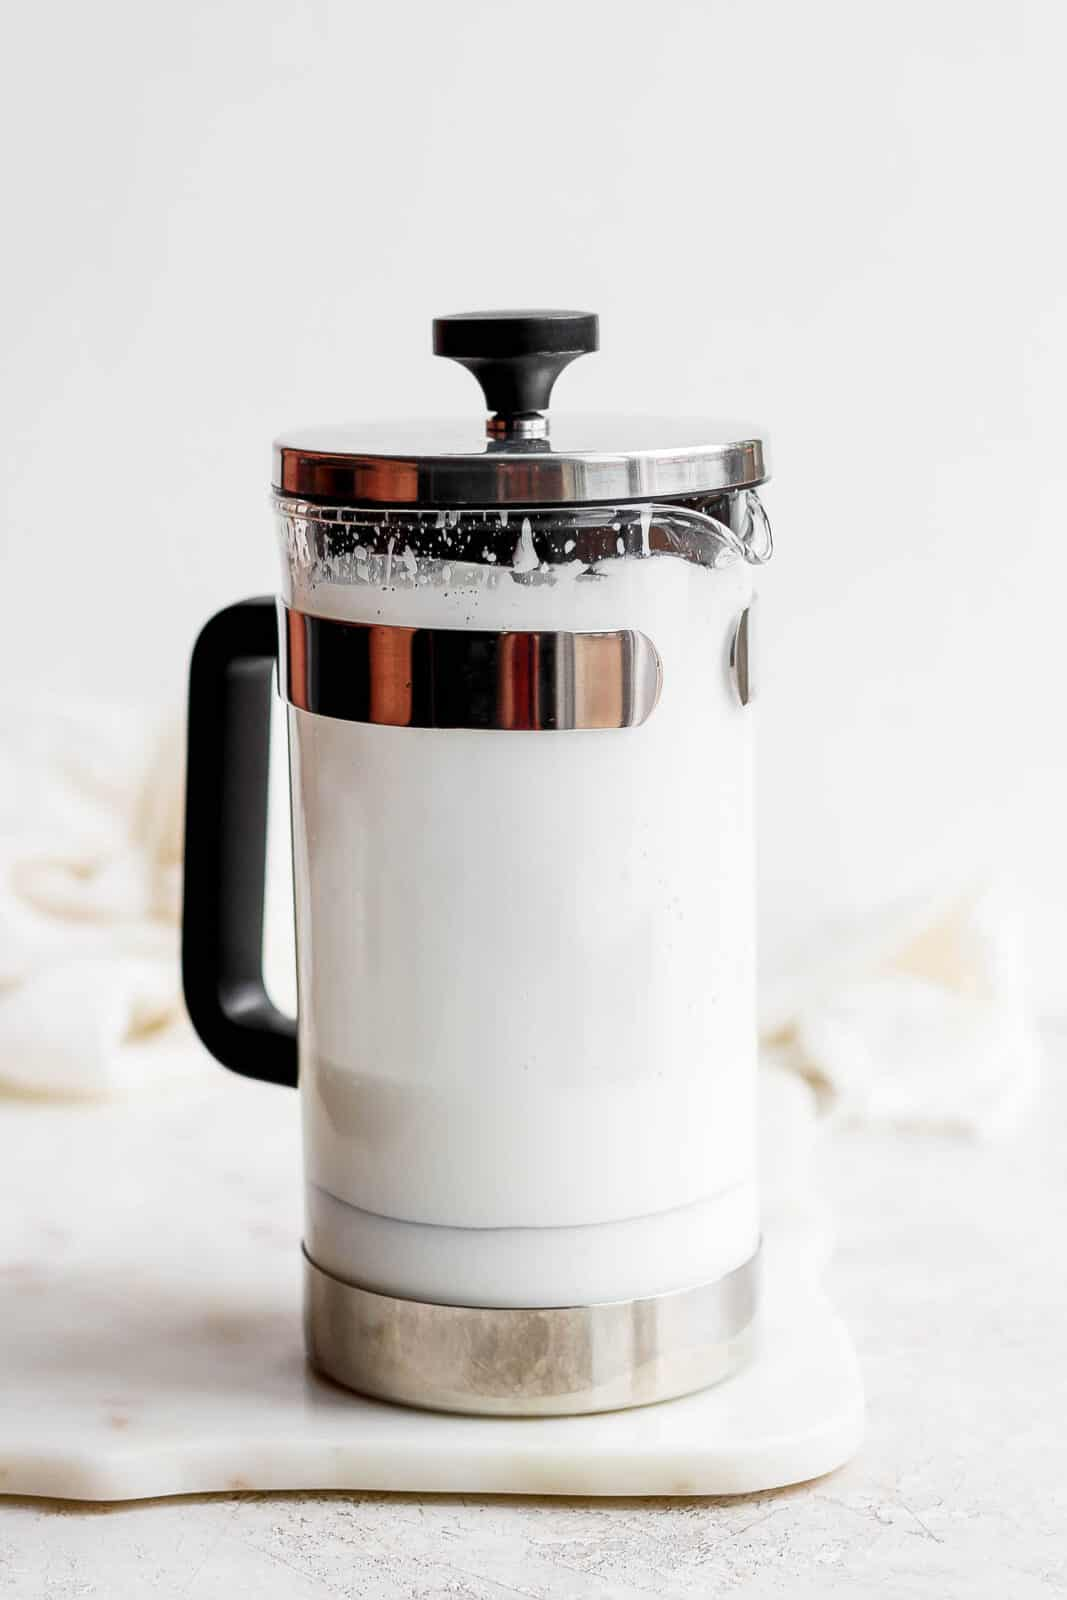 Sweet cream cold foam in a french press.